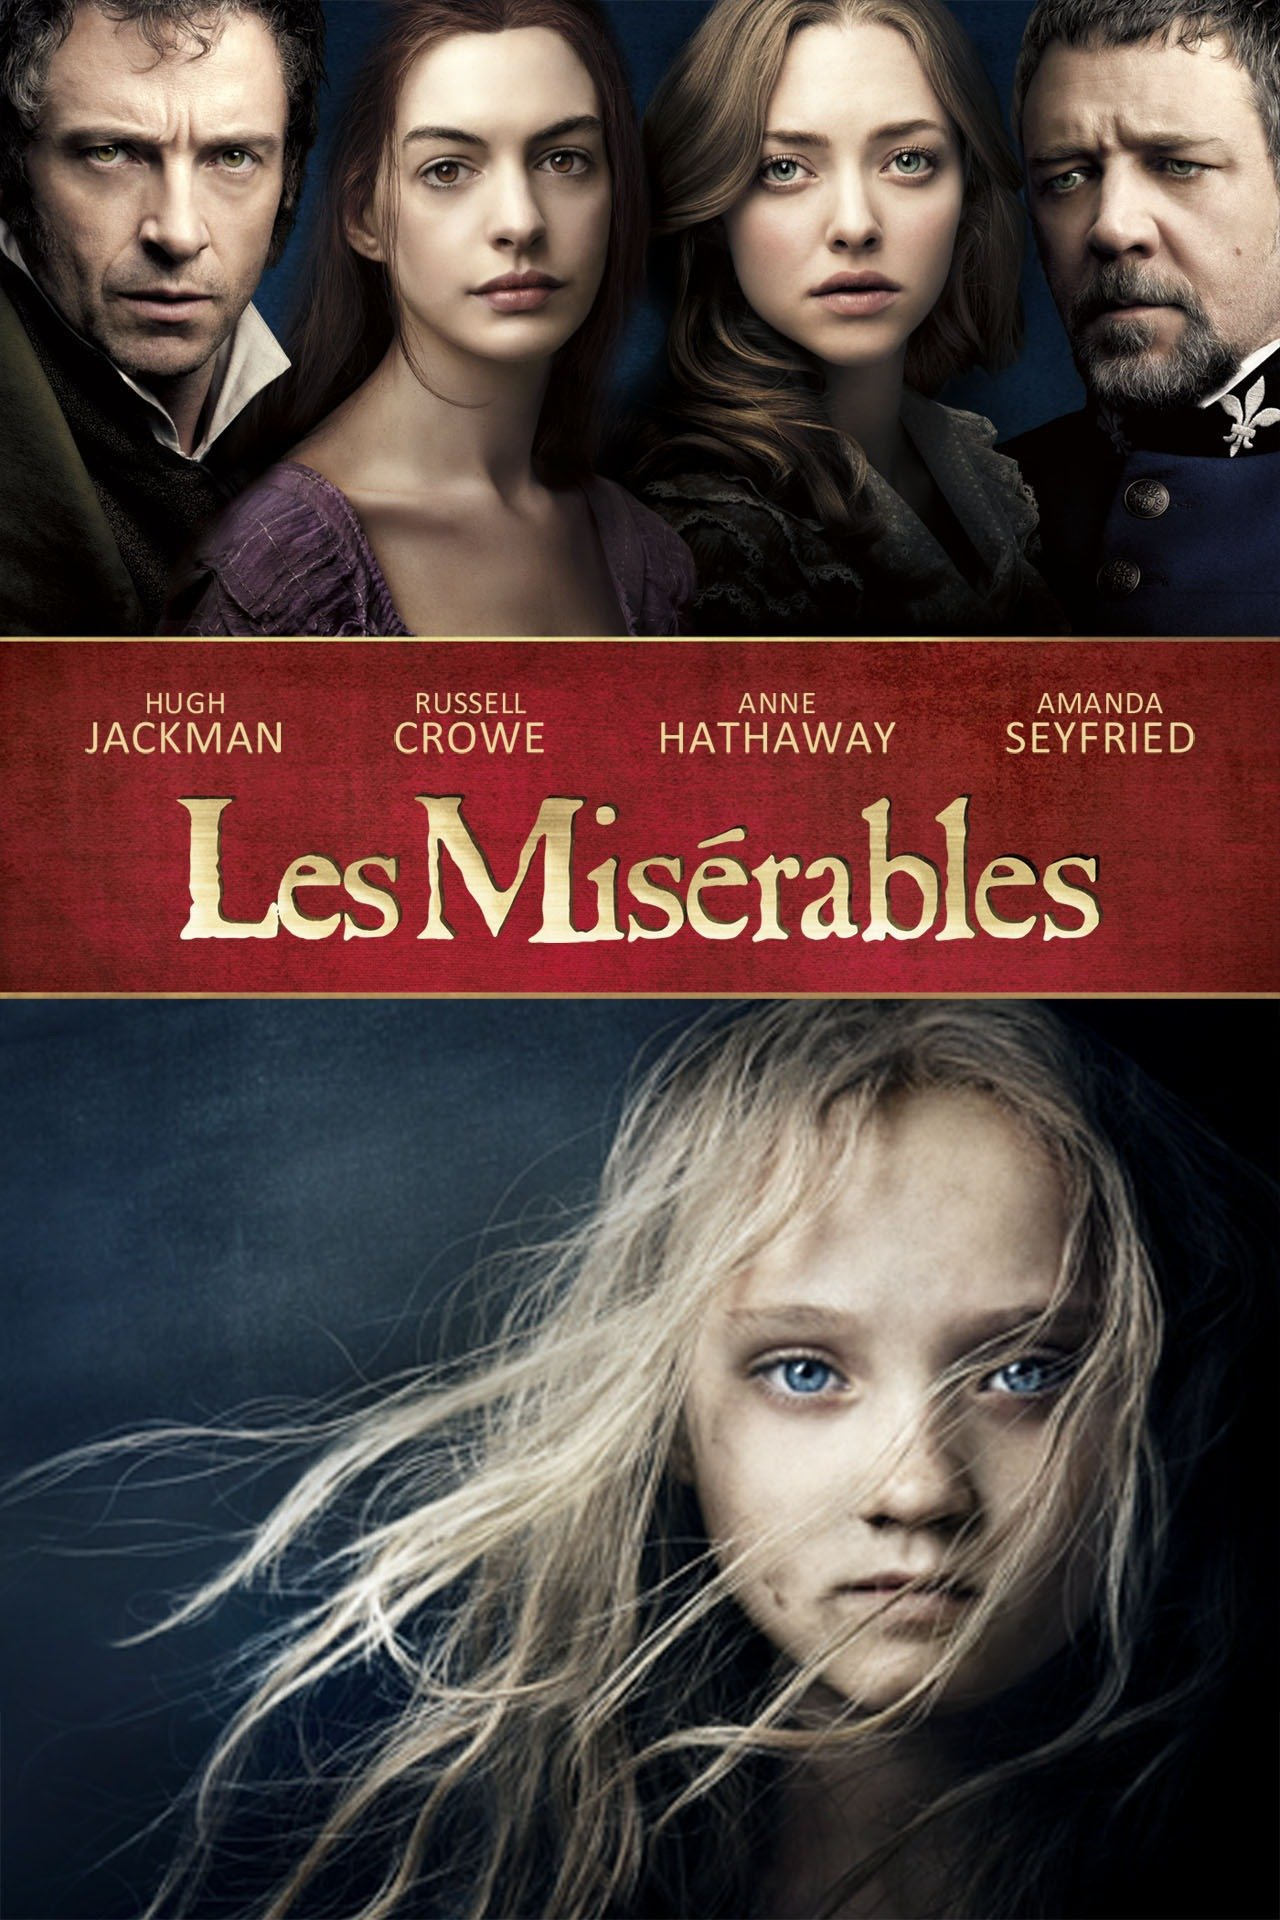 Les Miserables 2012 Rotten Tomatoes